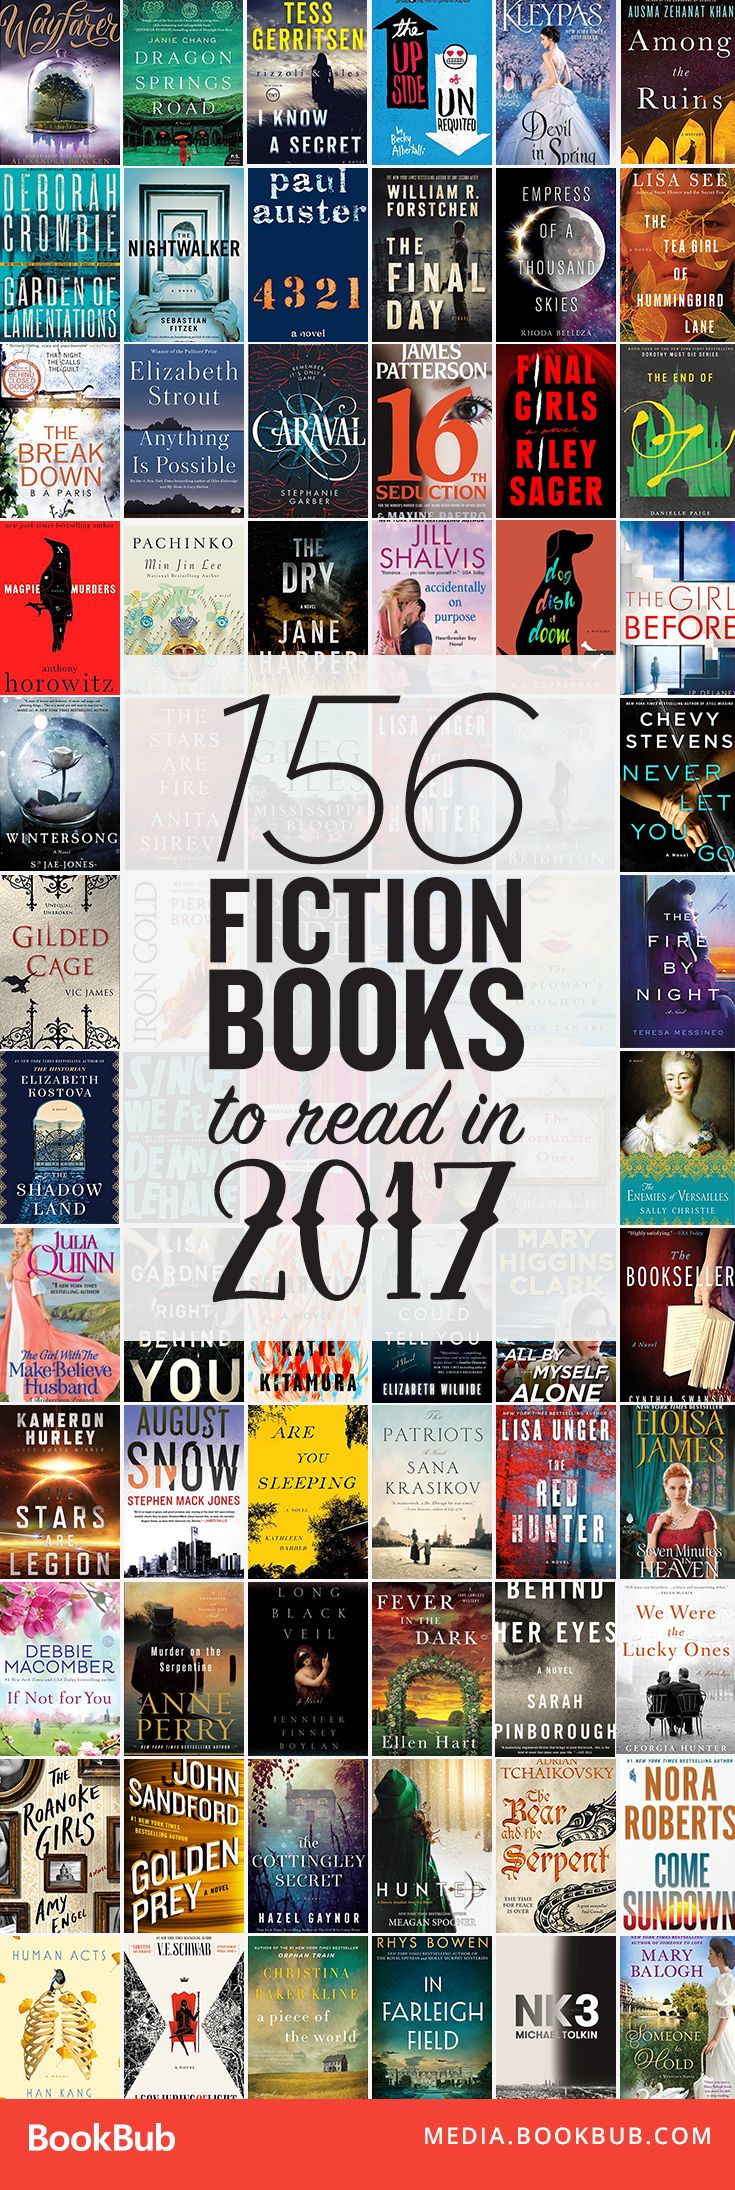 156 awesome books to read in 2017. Add all of these to your 2017 reading list!